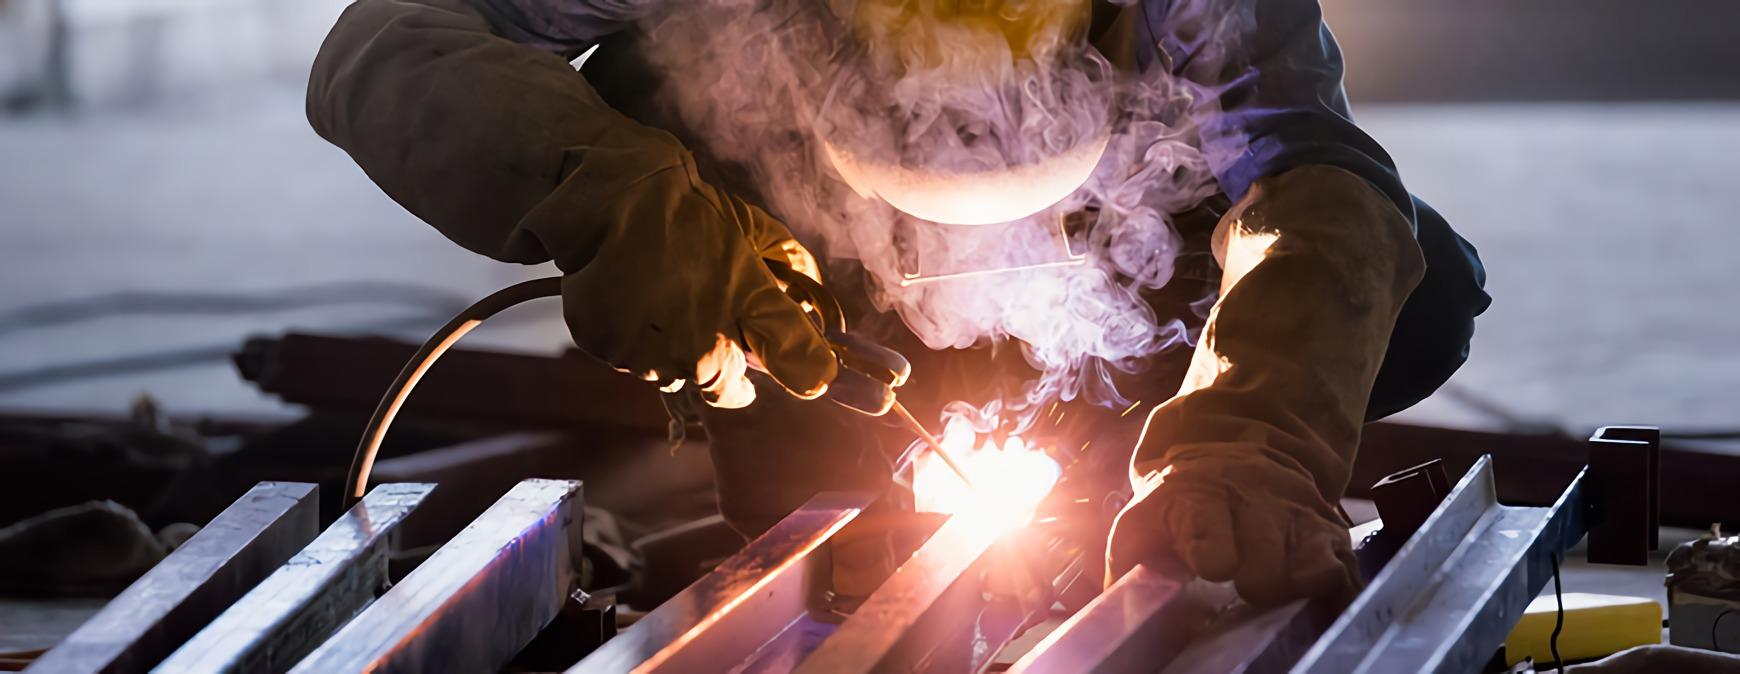 welding career skilled trade